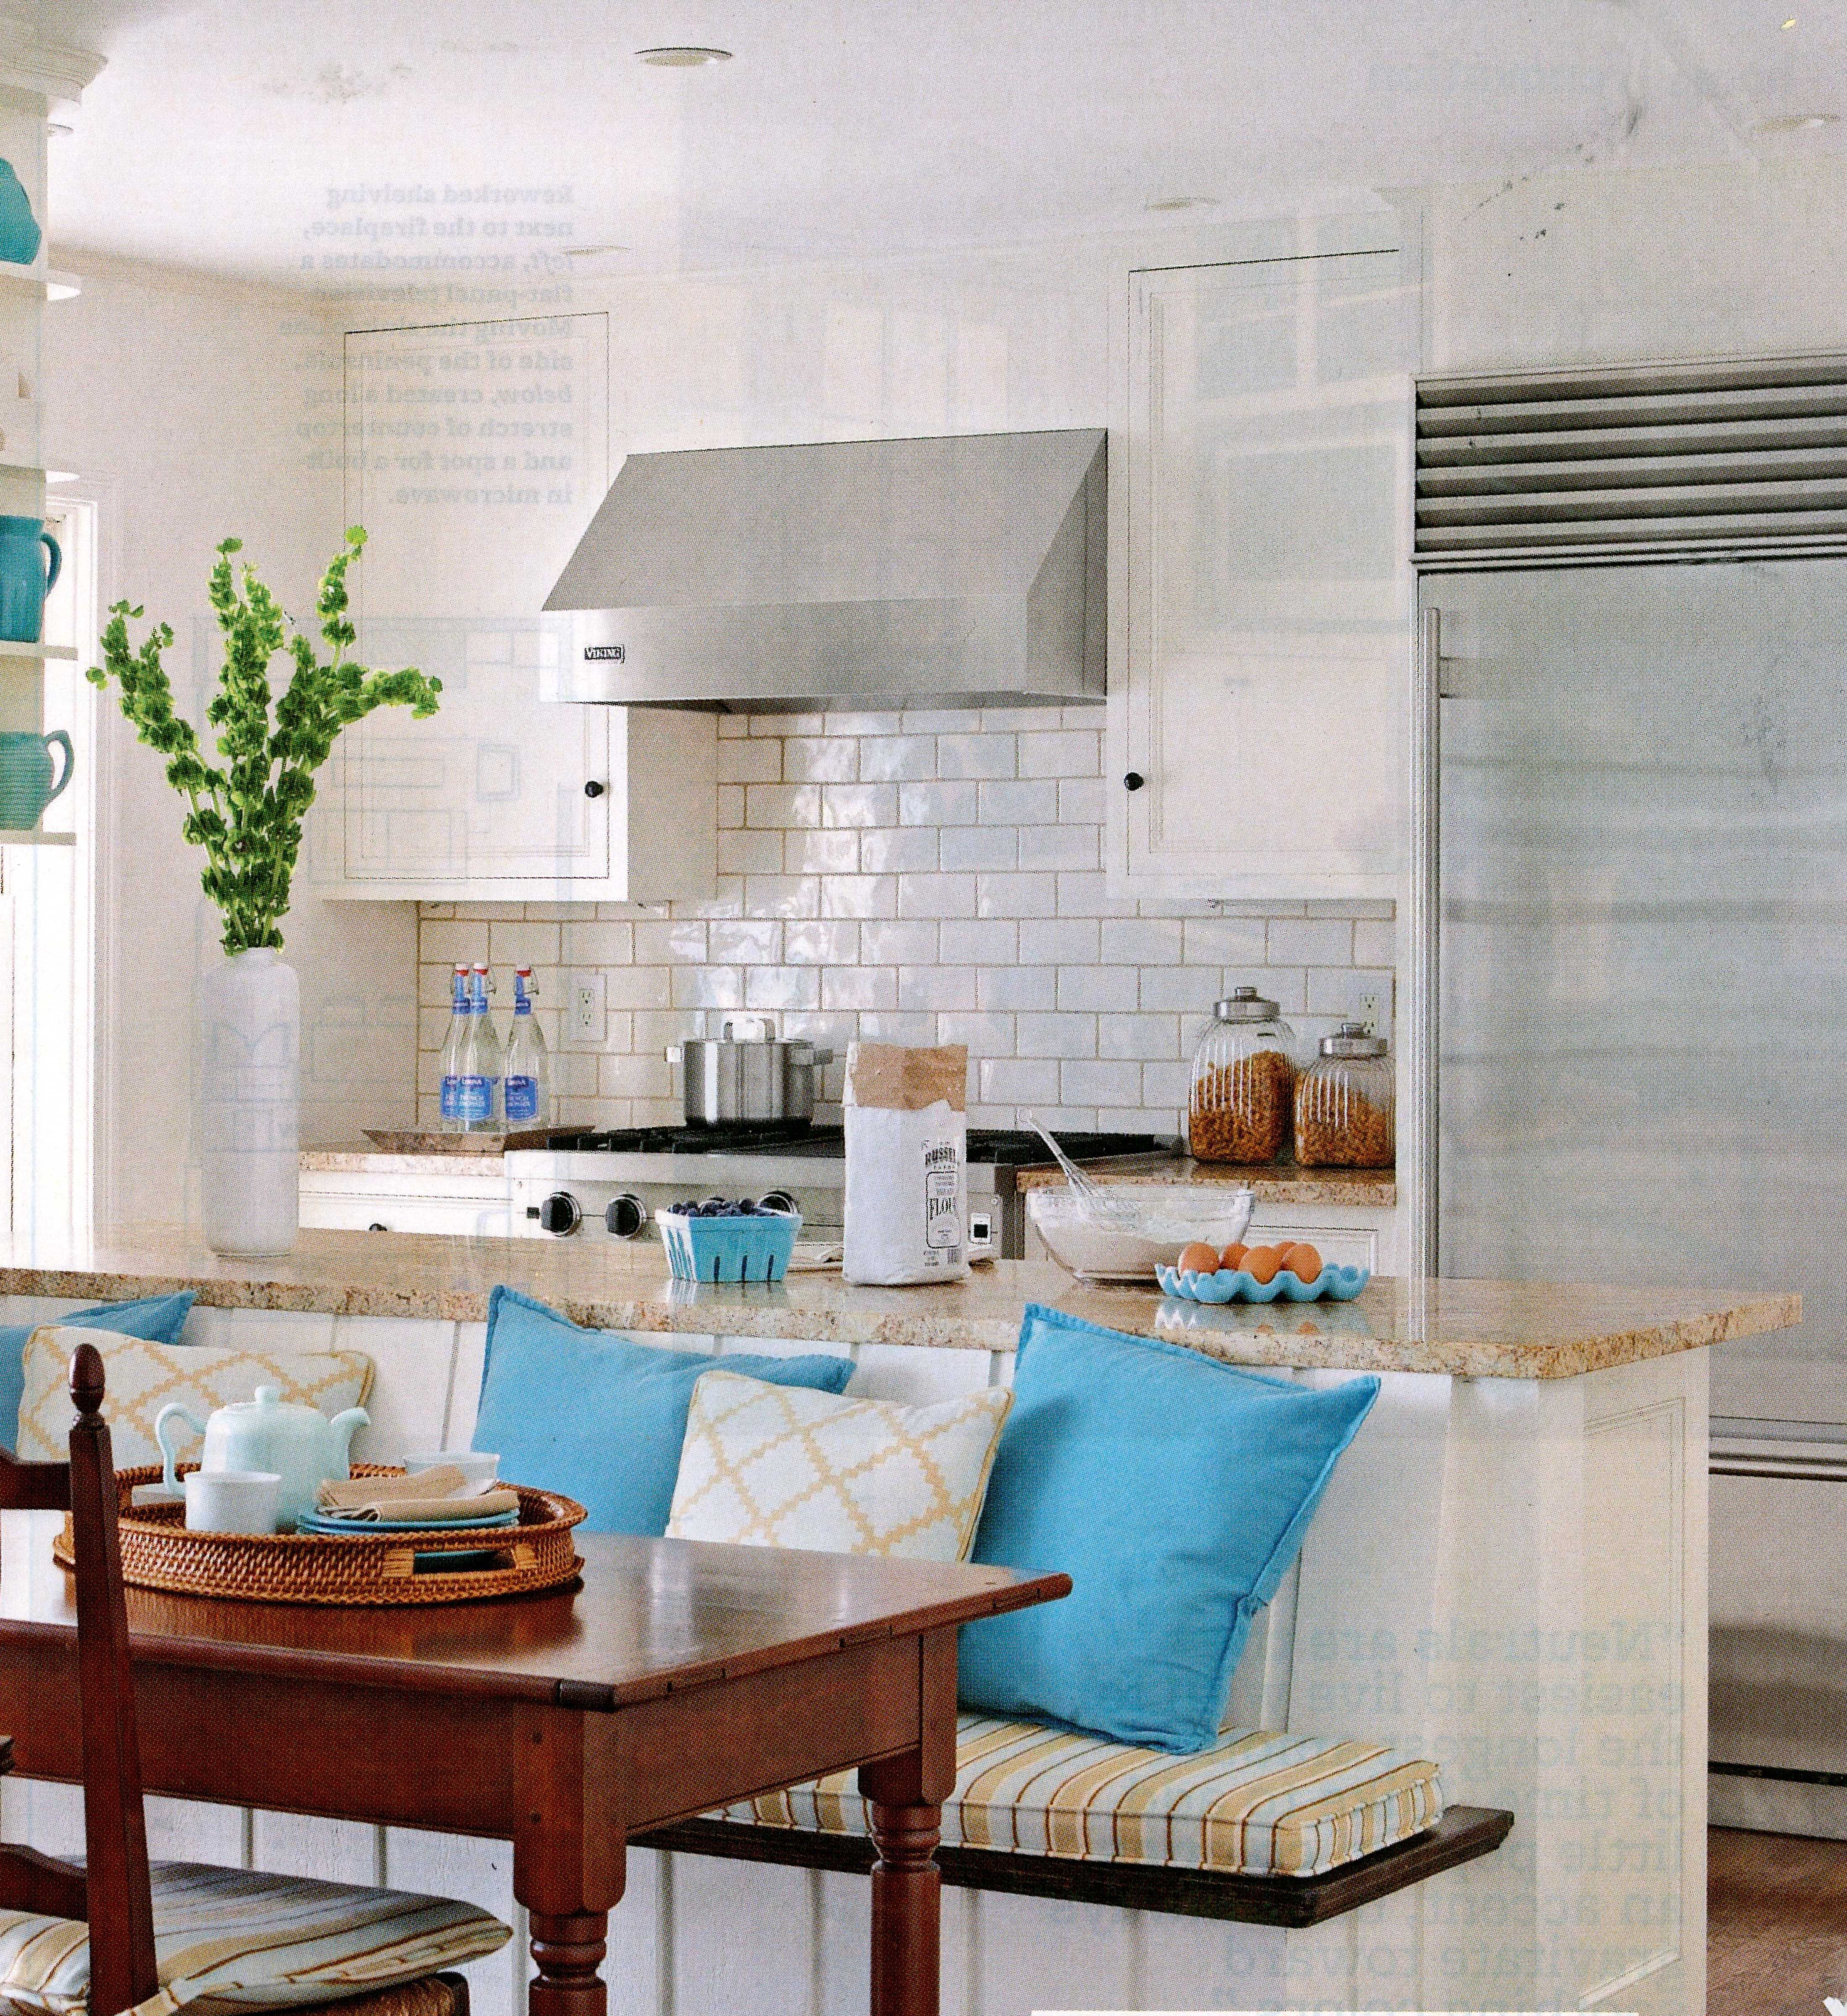 19 Must See Practical Kitchen Island Designs With Seating: Island Banquette